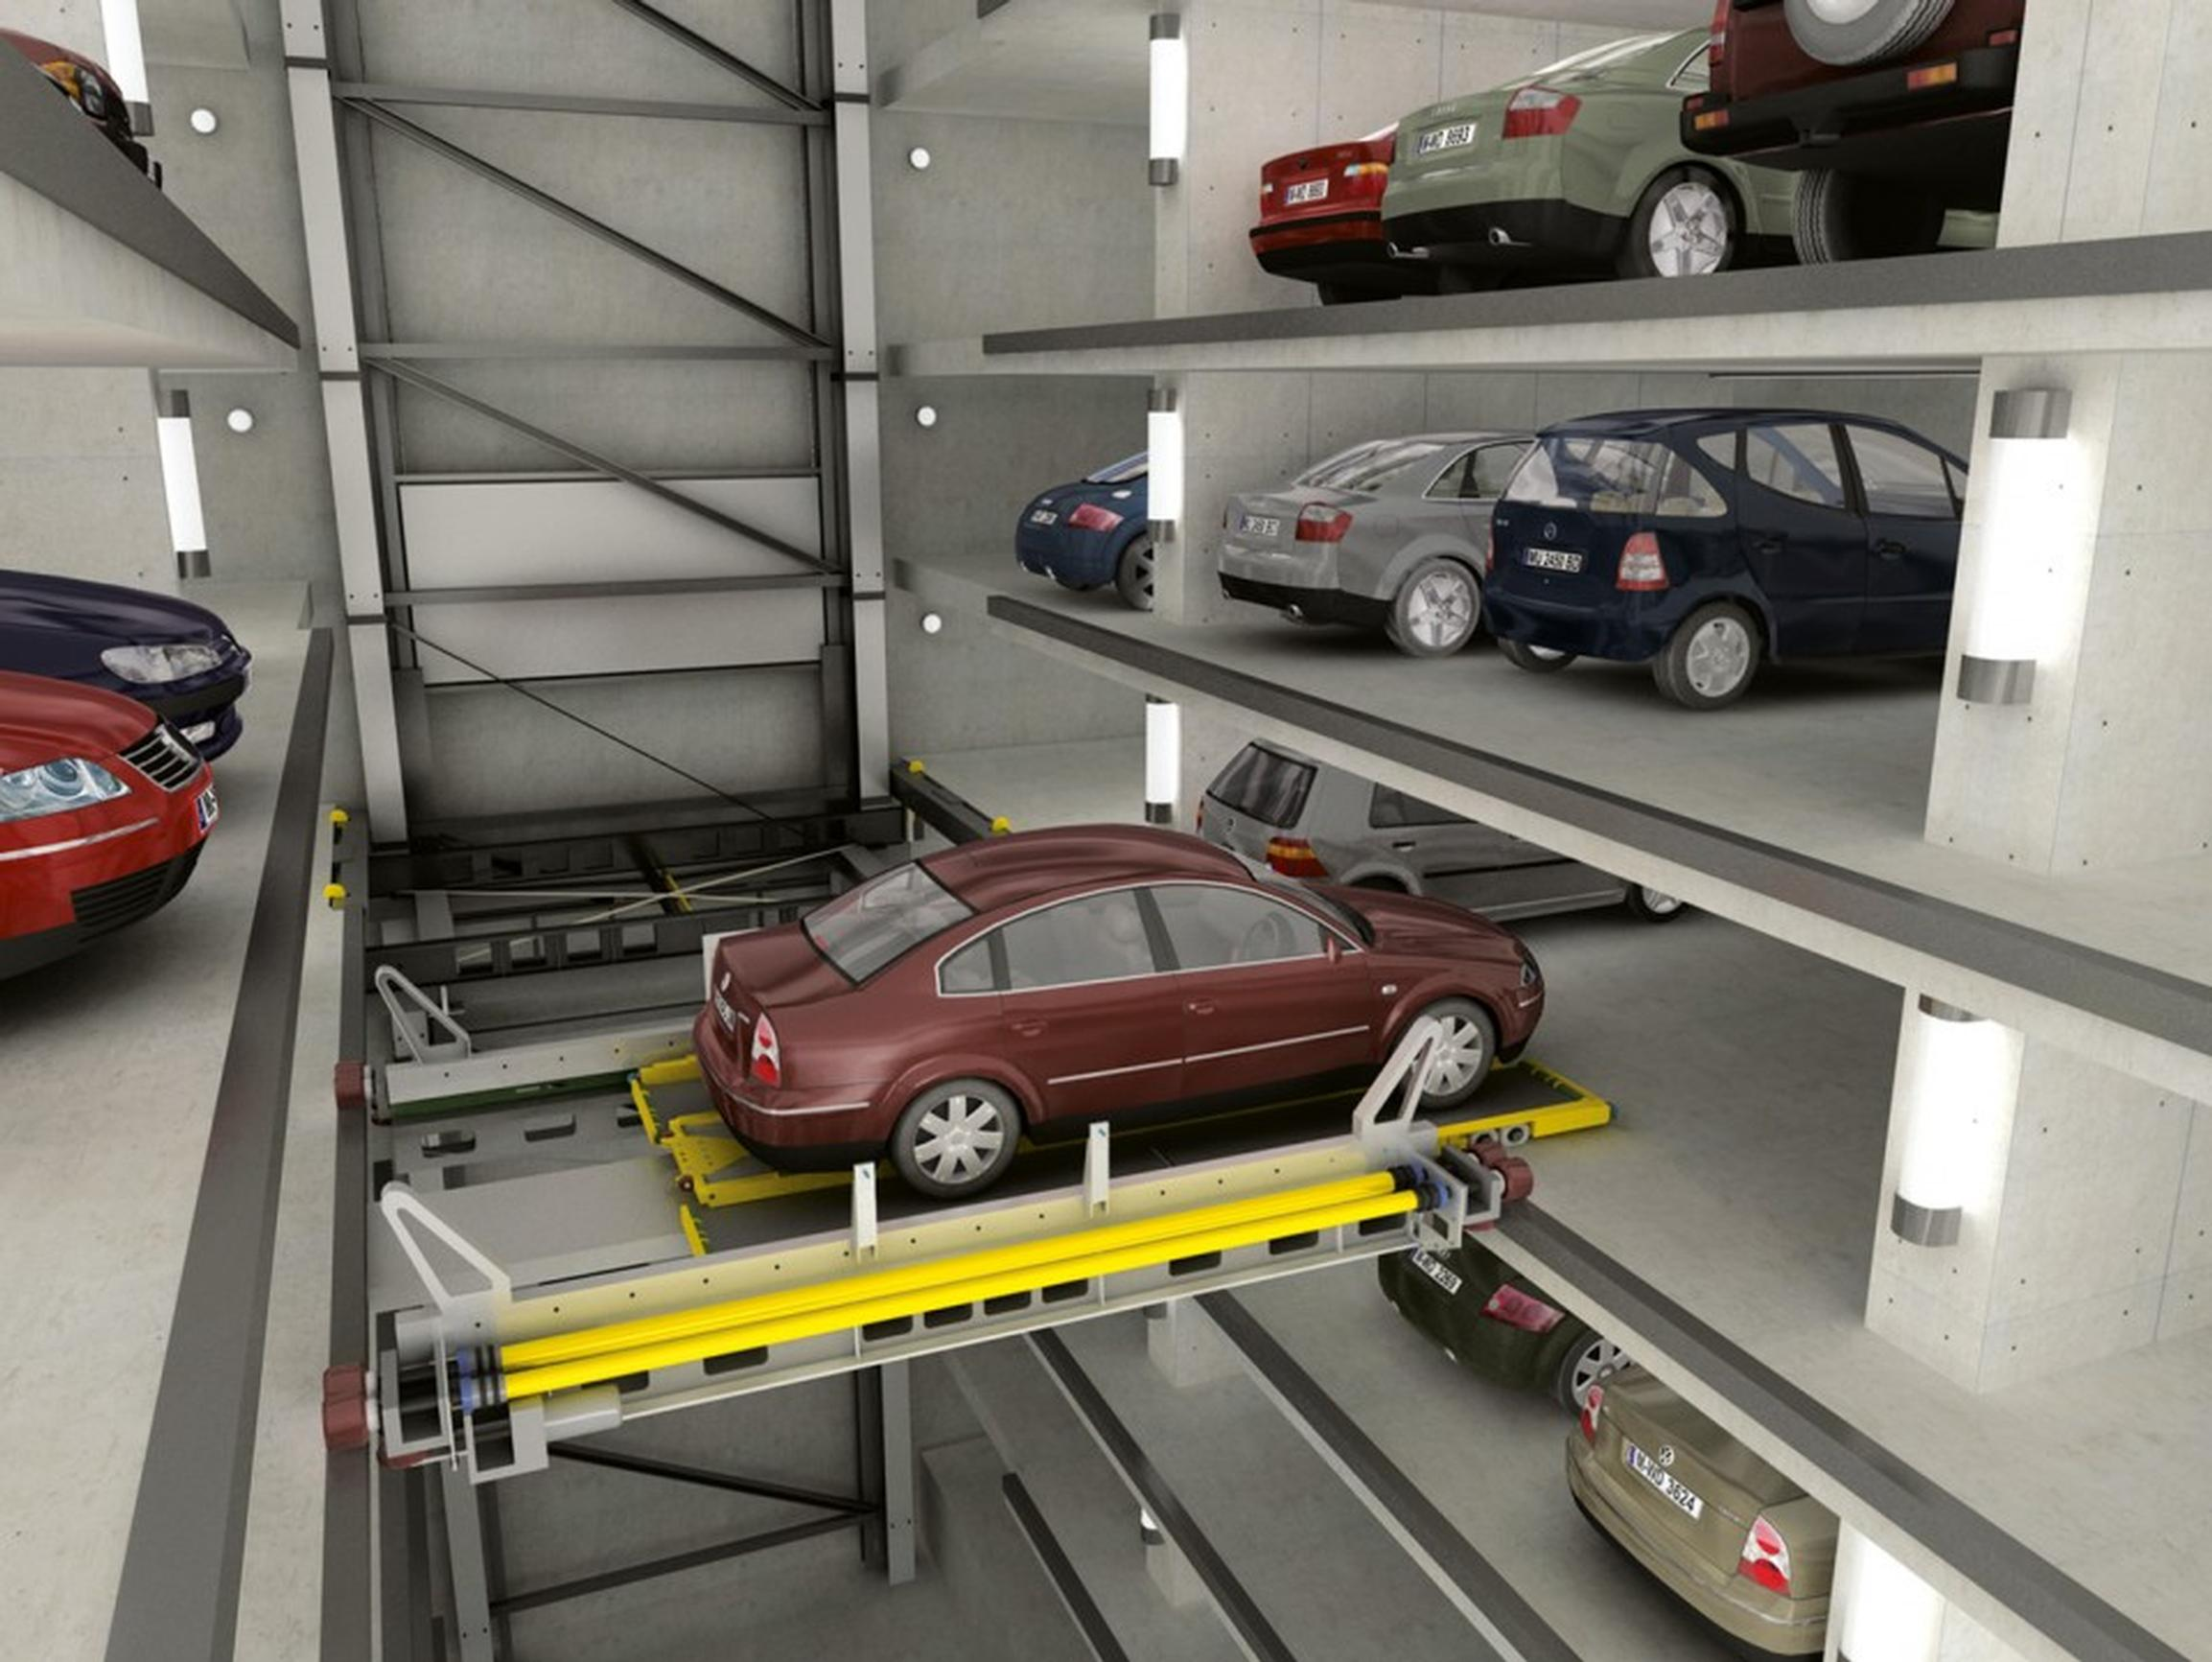 Building information models for robotic parking systems